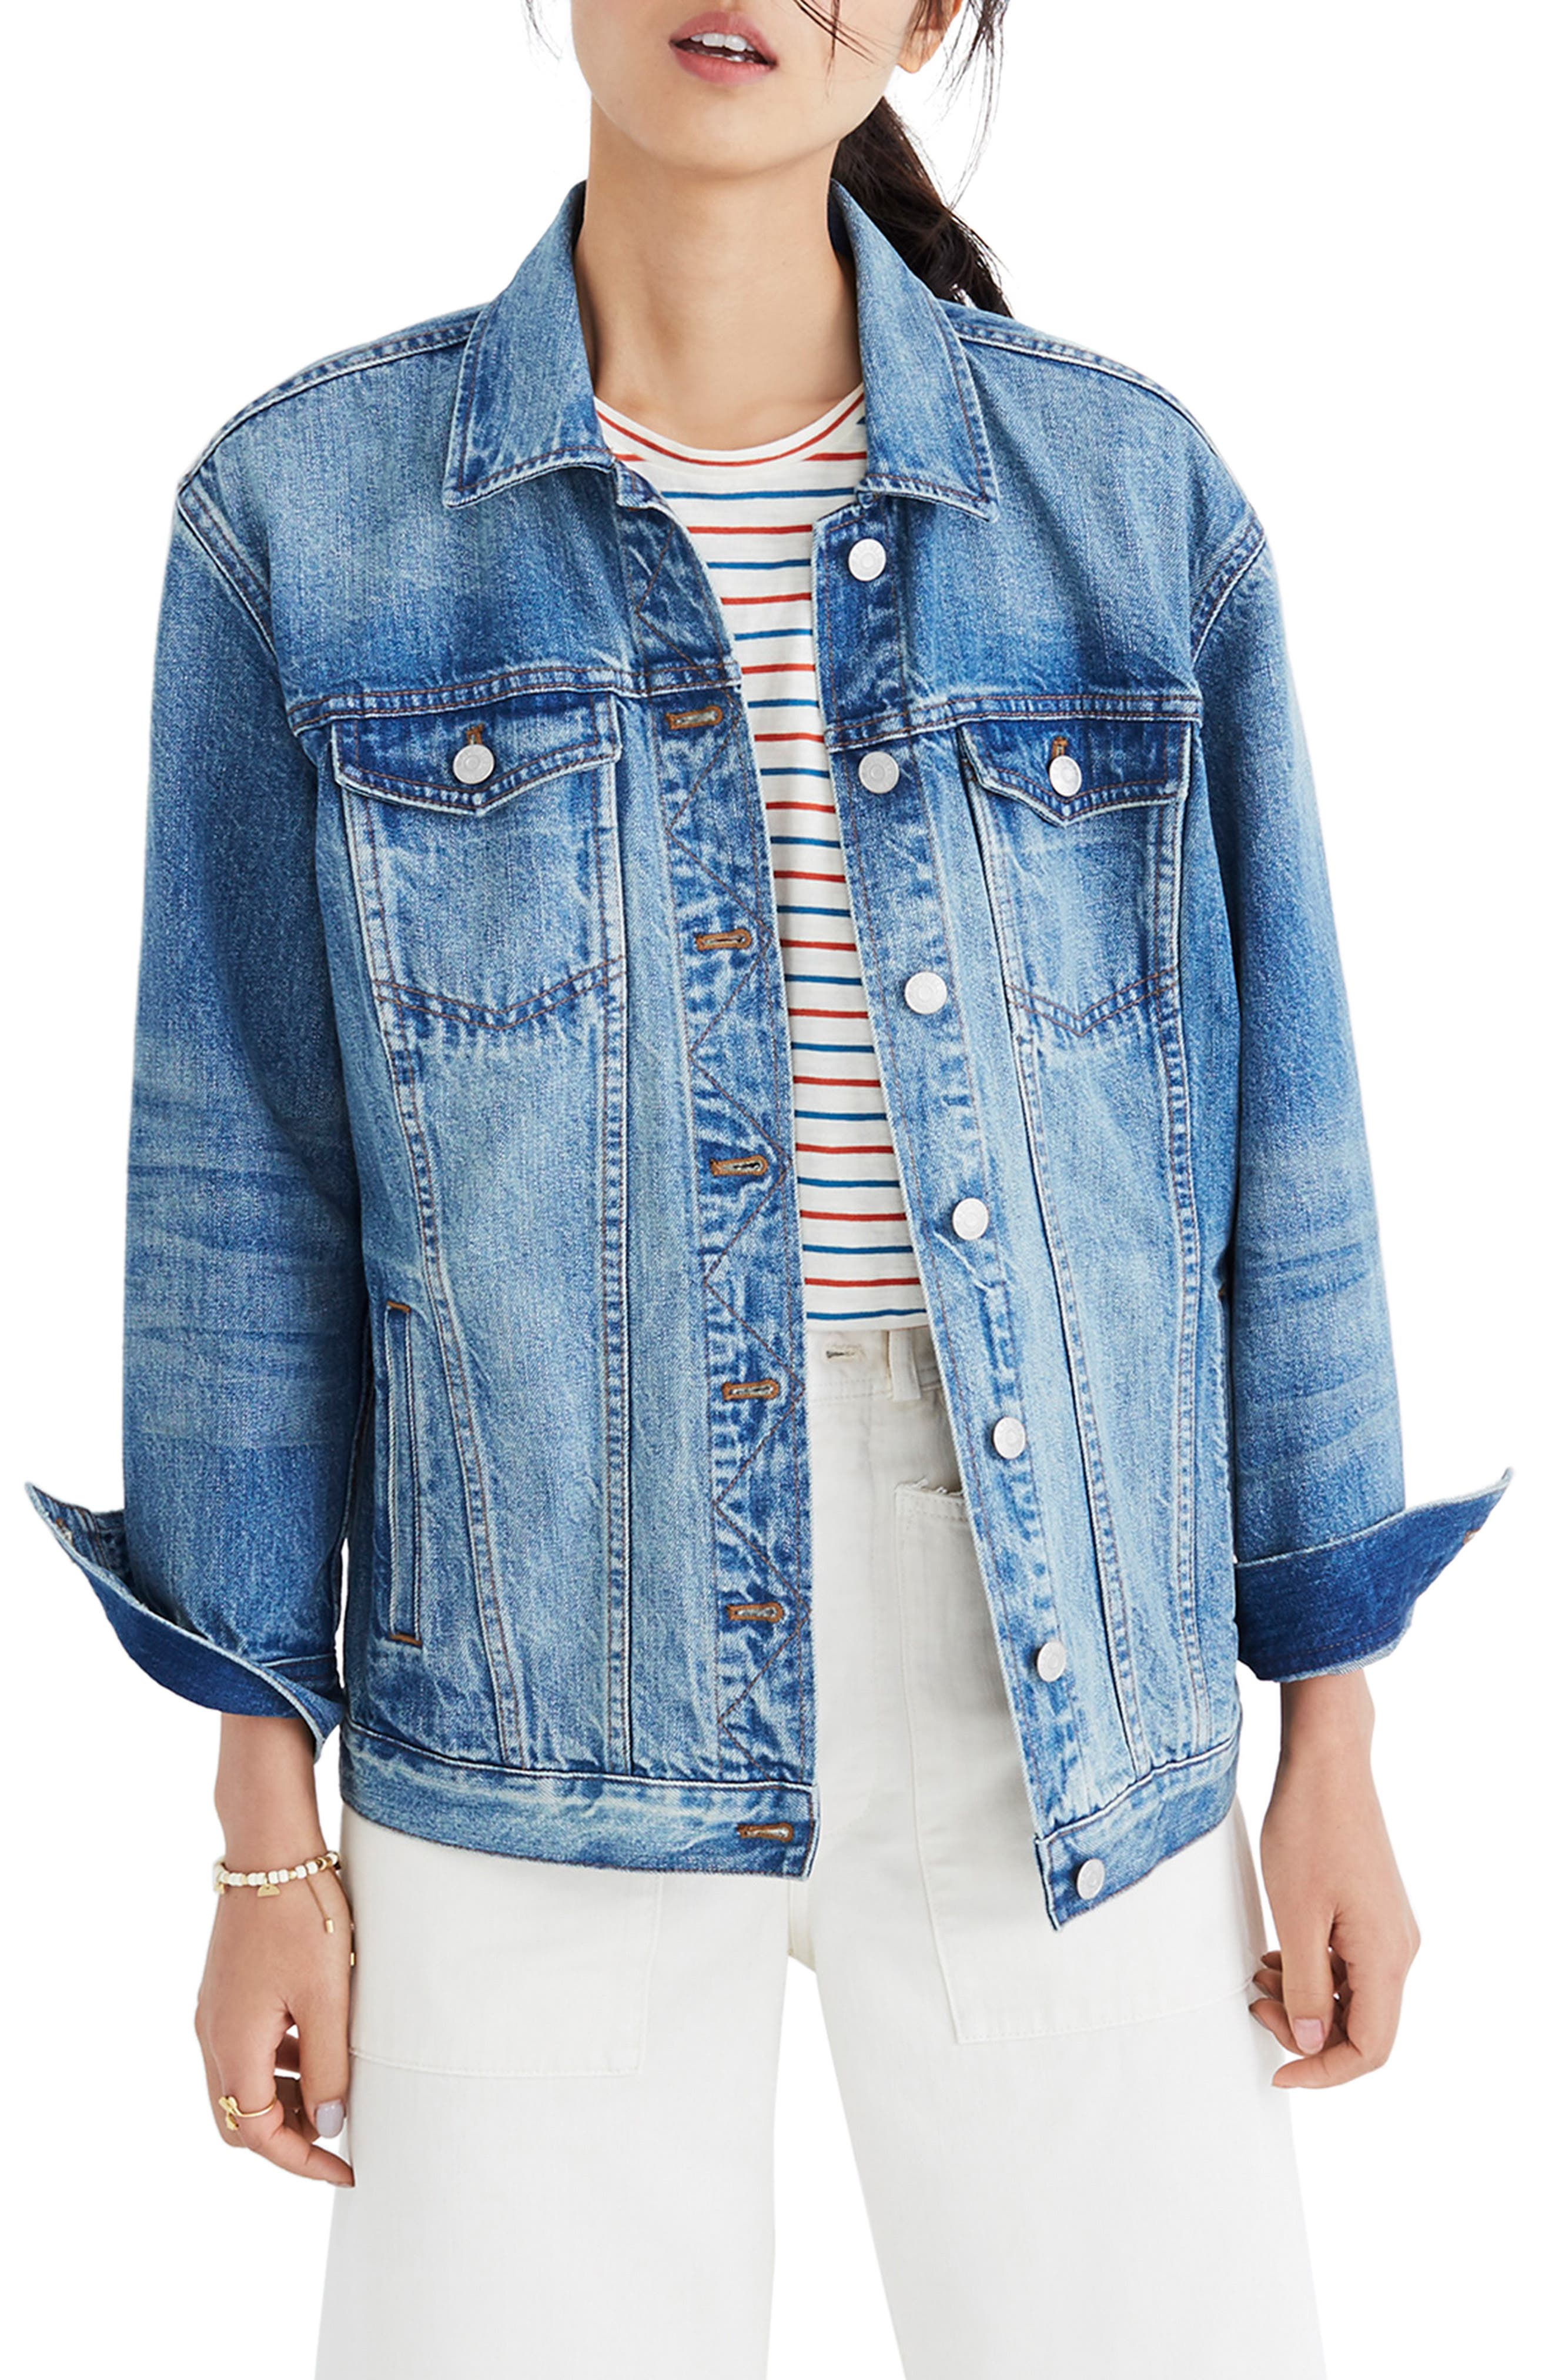 MADEWELL, Oversize Denim Jacket, Main thumbnail 1, color, CAPSTONE WASH